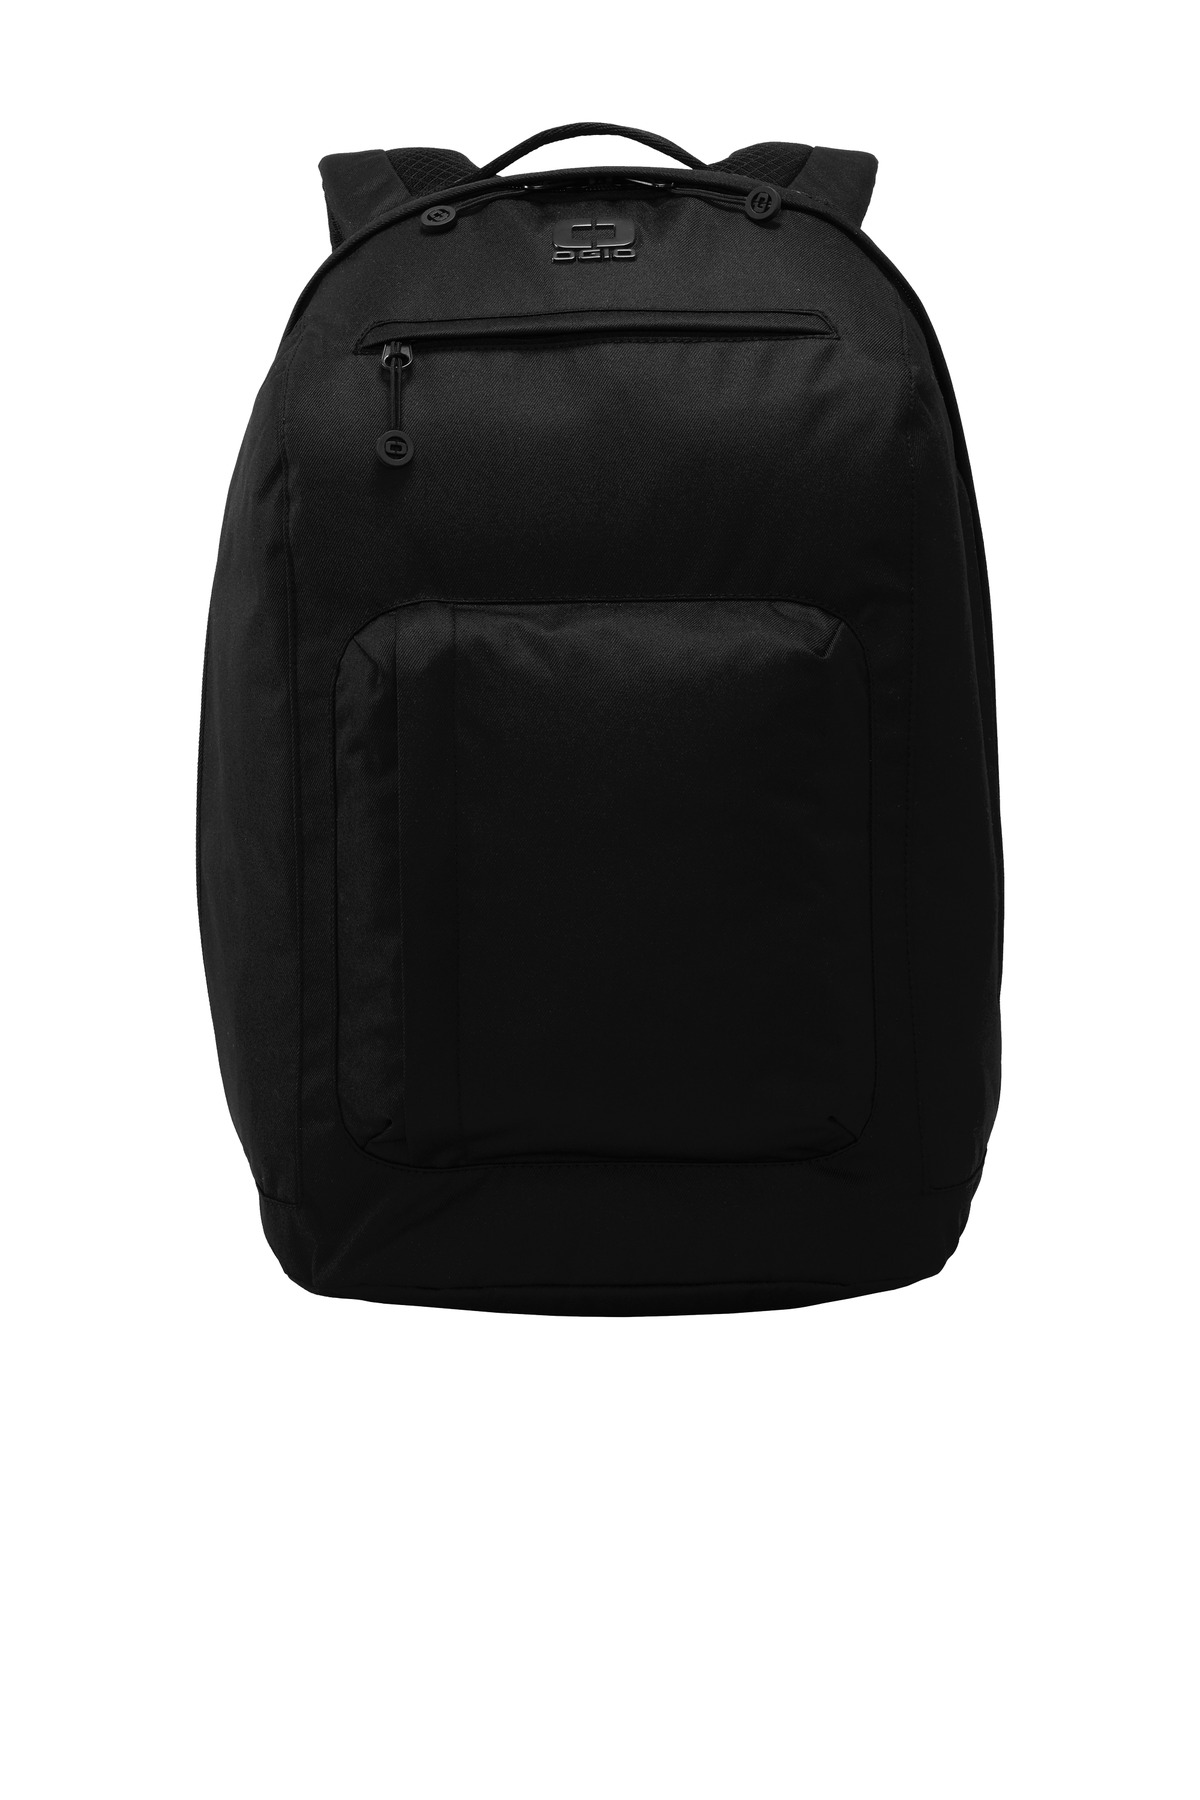 OGIO  ®  Downtown Pack. 91006 - Black